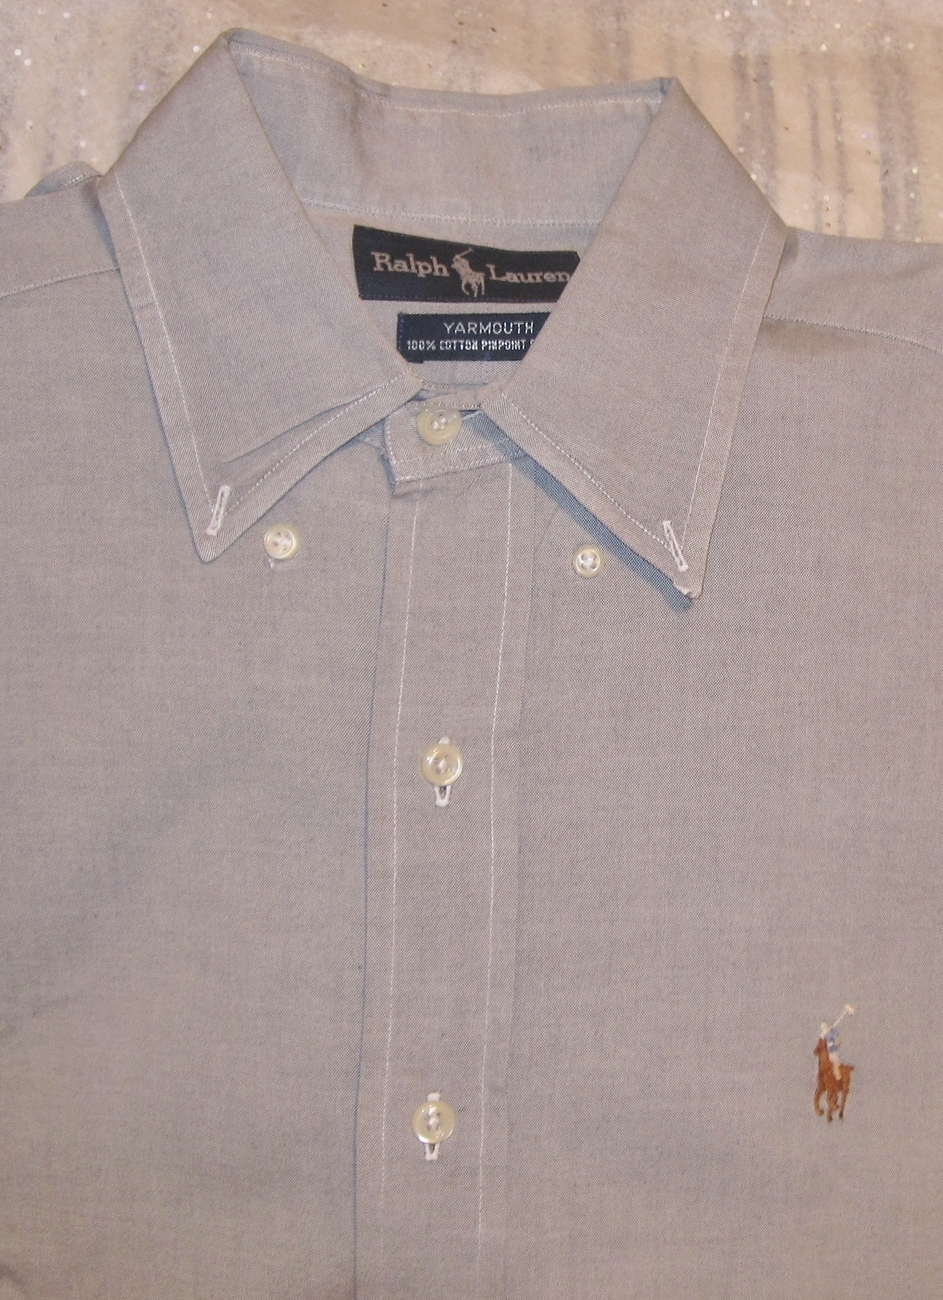 Ralph Lauren Mens Long Sleeve Shirt Size 15 / 32-33